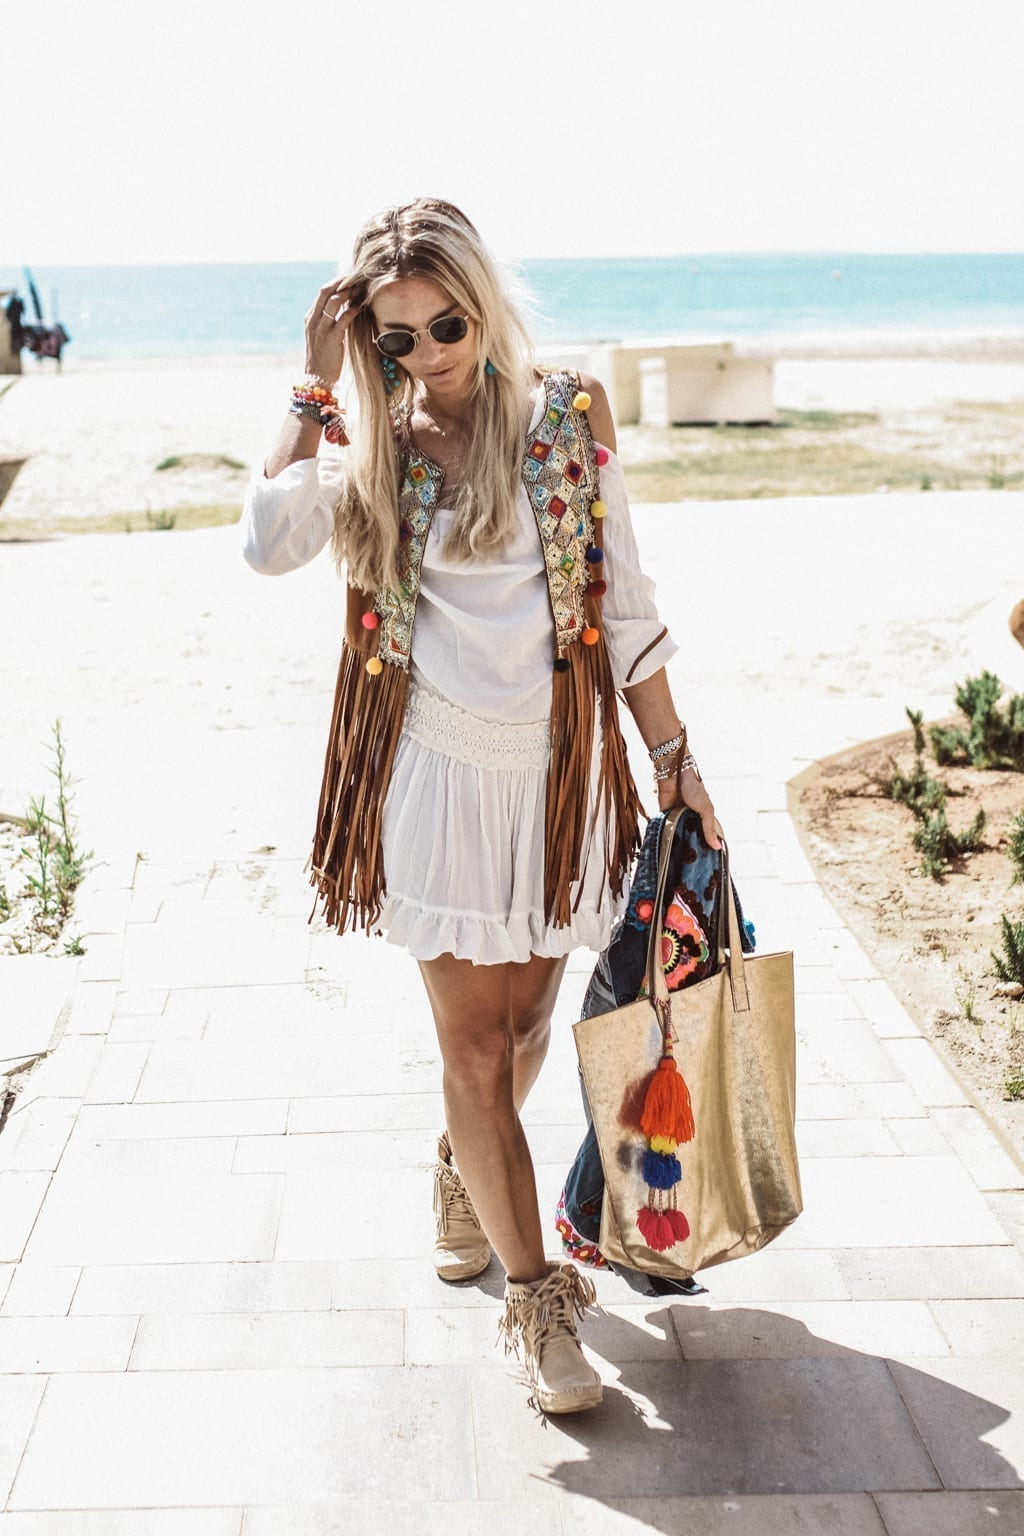 CK1605_Constantly-K-Karin-Kaswurm-Georg-Teigl-Ibiza-Holiday-Spain-Blog-Street-Style-Fashion-Boho-Chic-Beach-Style-7723